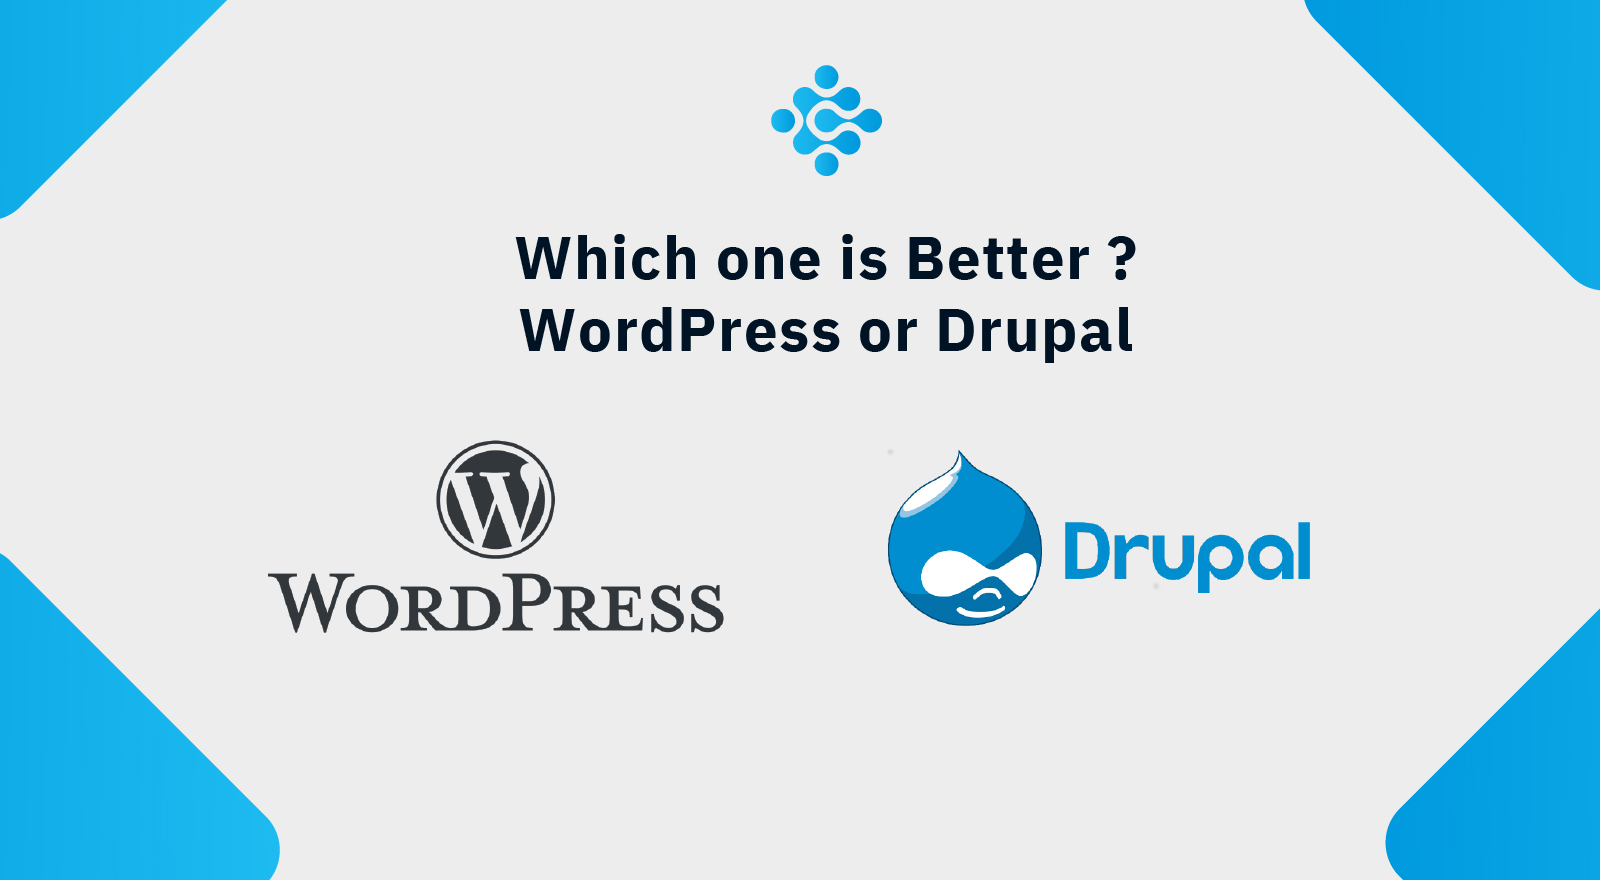 Which one is better: WordPress or Drupal